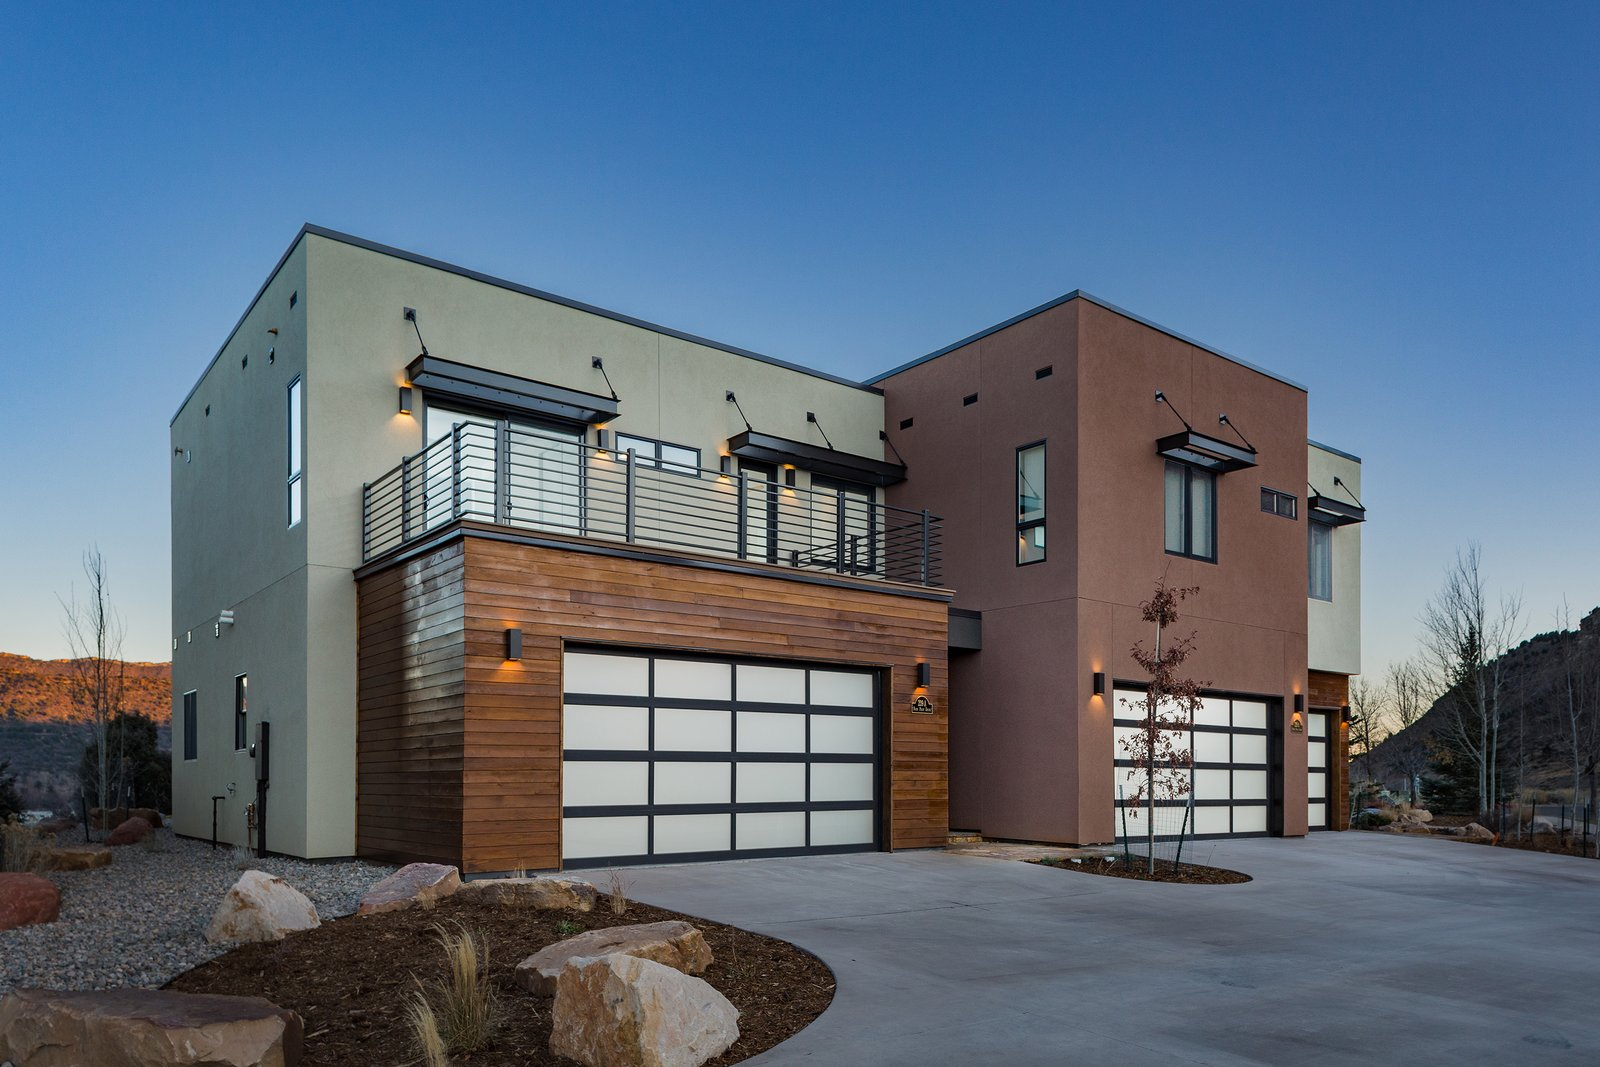 Exterior, Flat RoofLine, Metal Siding Material, House Building Type, and Wood Siding Material  Remarkable Residence with Mountain Views in Colorado Asks $1.29M